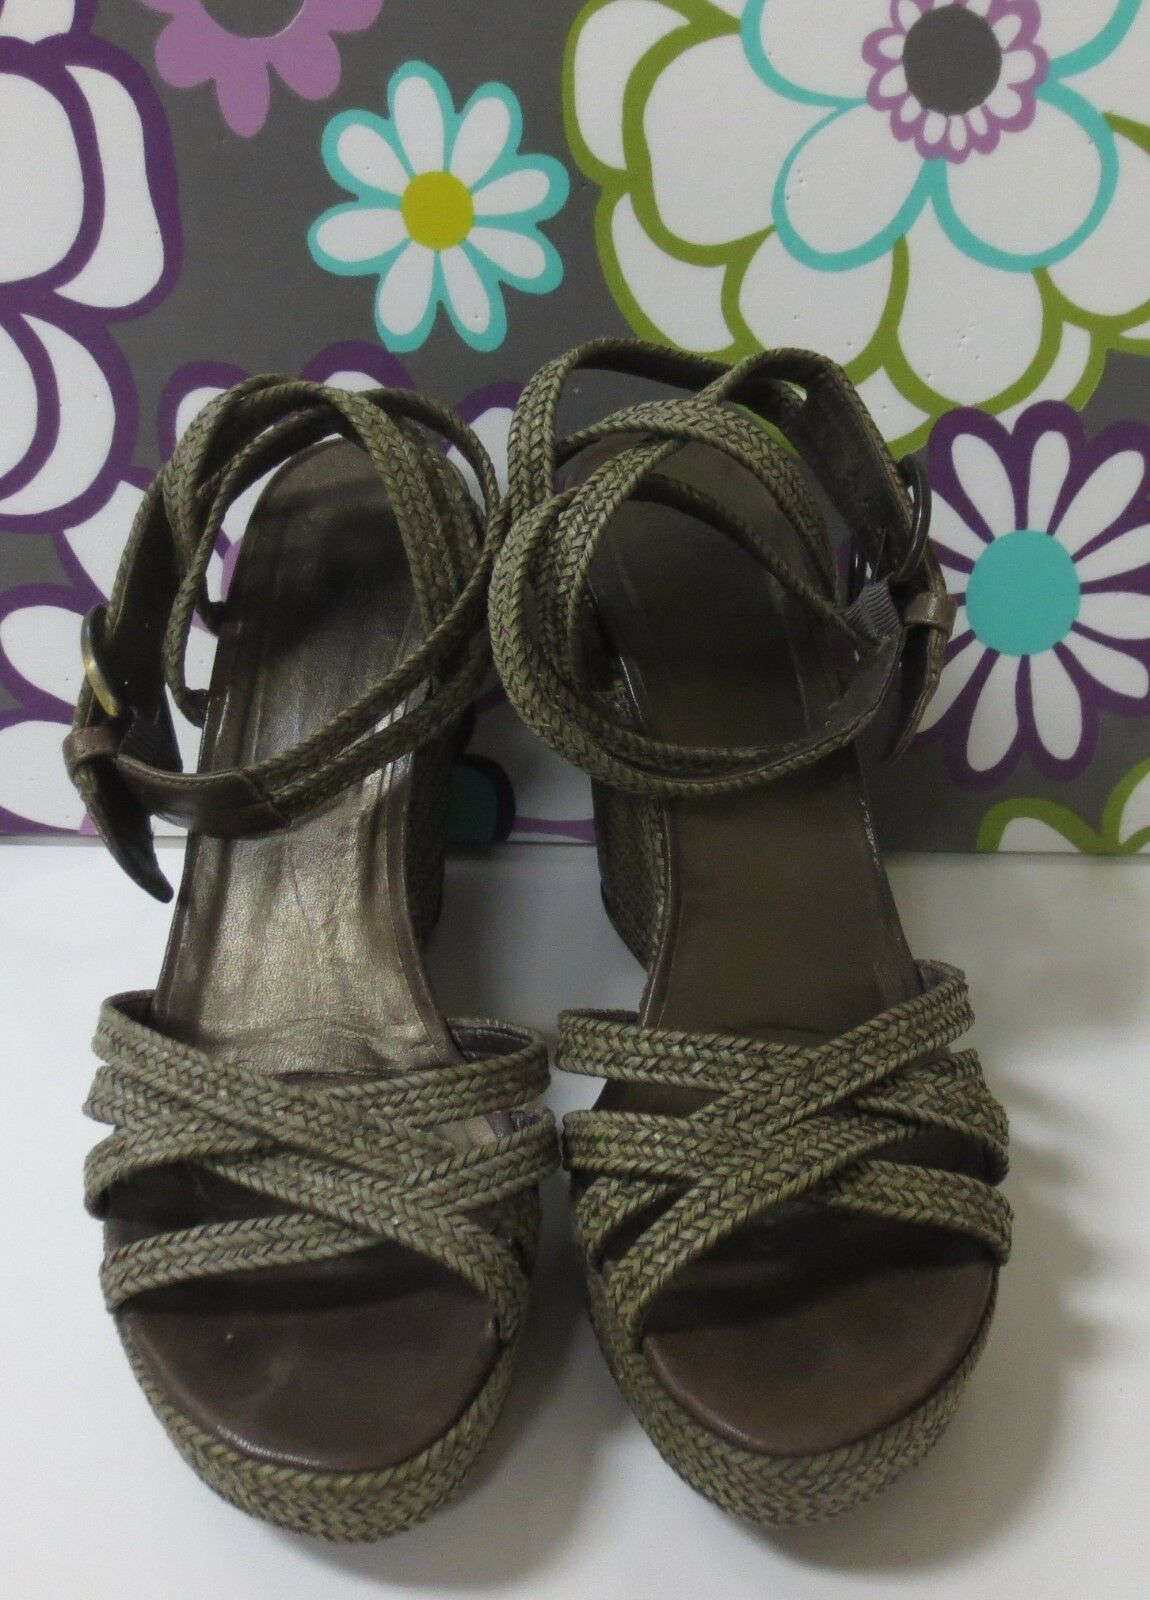 STUART WEITZMAN Green Woven Platform Sandals shoes 11 MINT CONDITION